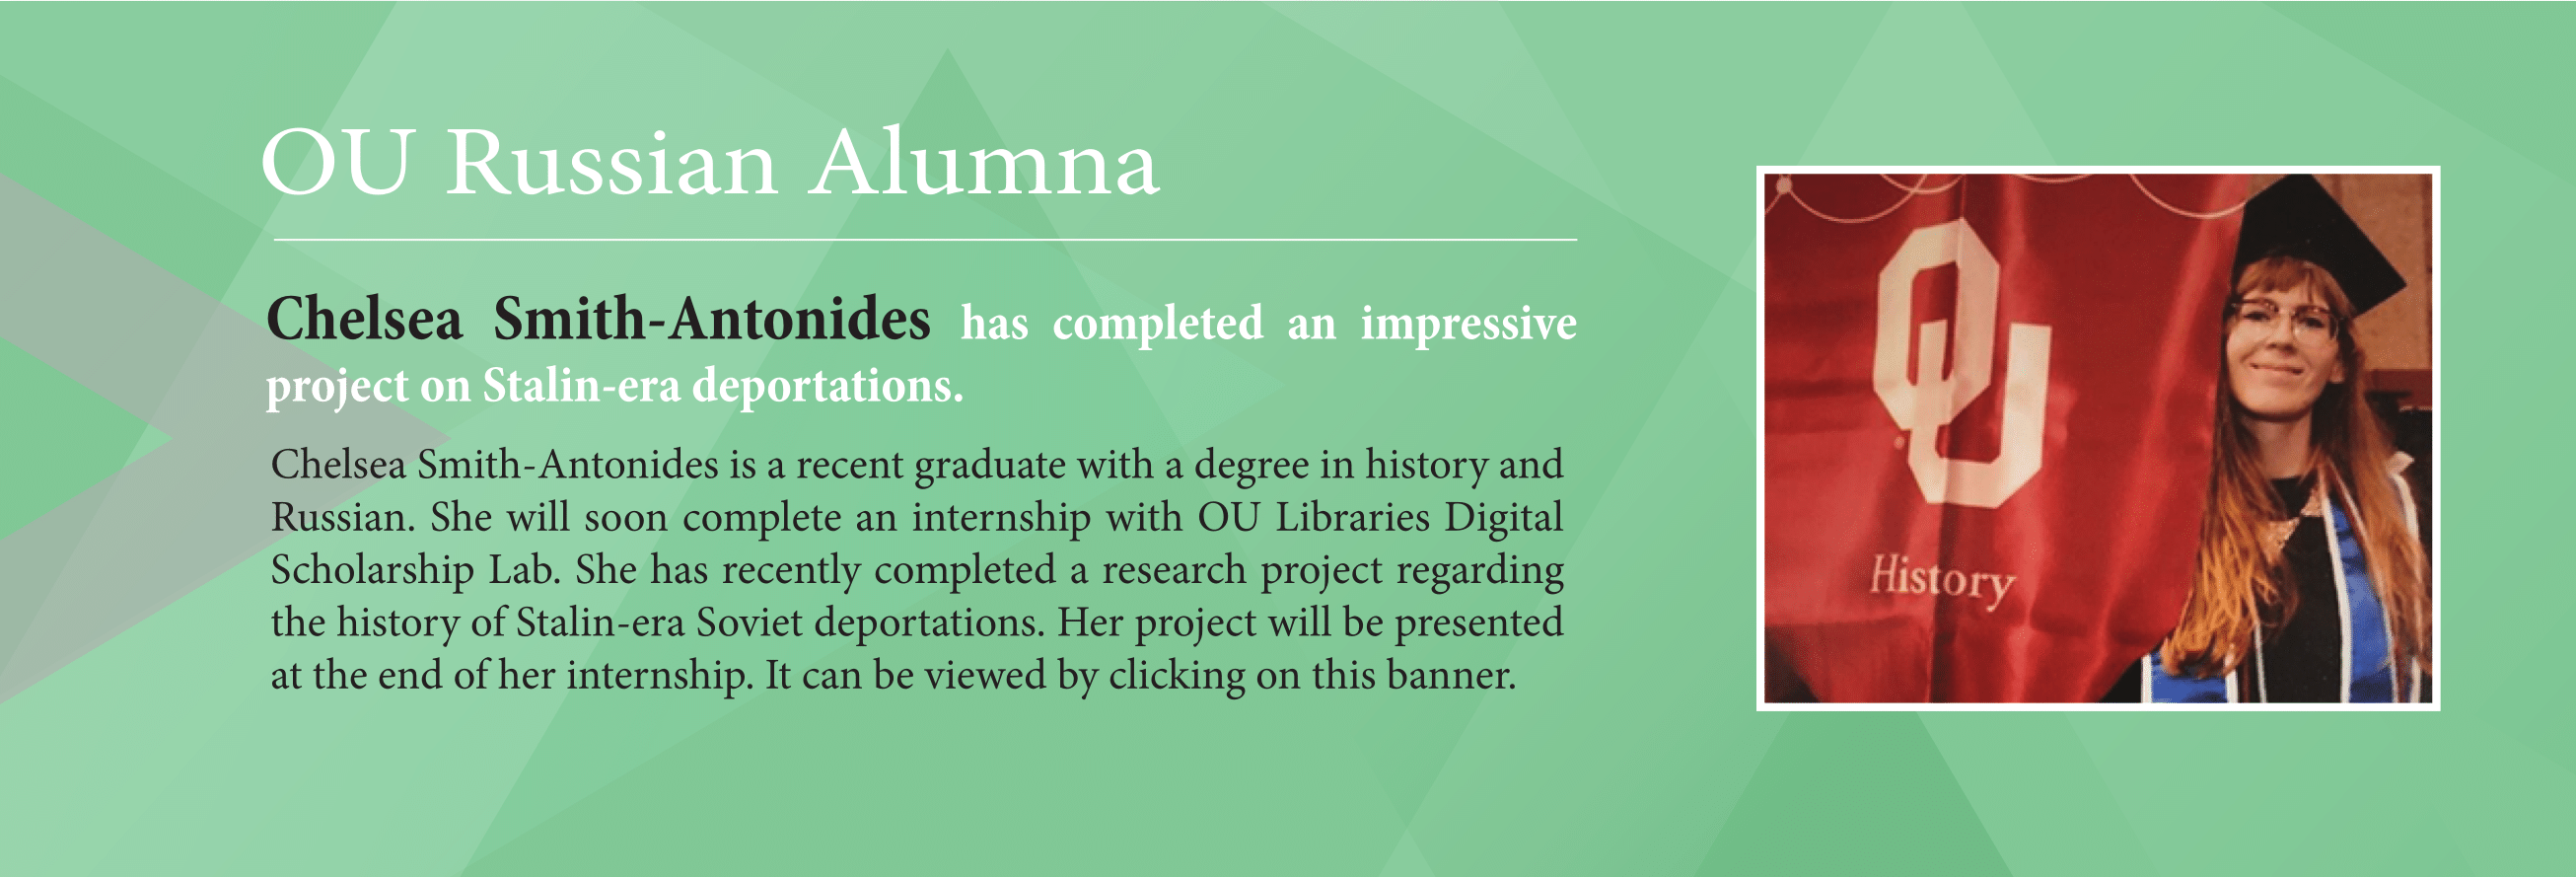 Green banner with image of a red headed woman holding an OU history banner. The banner says, Chelsea Smith-Antonides has completed an impressive project on Stalin-era deportations.  Chelsea Smith-Antonides is a recent graduate with a degree in history and Russian. She will soon complete an internship with OU Libraries Digital Scholarship Lab. She has recently completed a research project regarding the history of Stalin-era Soviet deportations. Her project will be presented at the end of her internship.